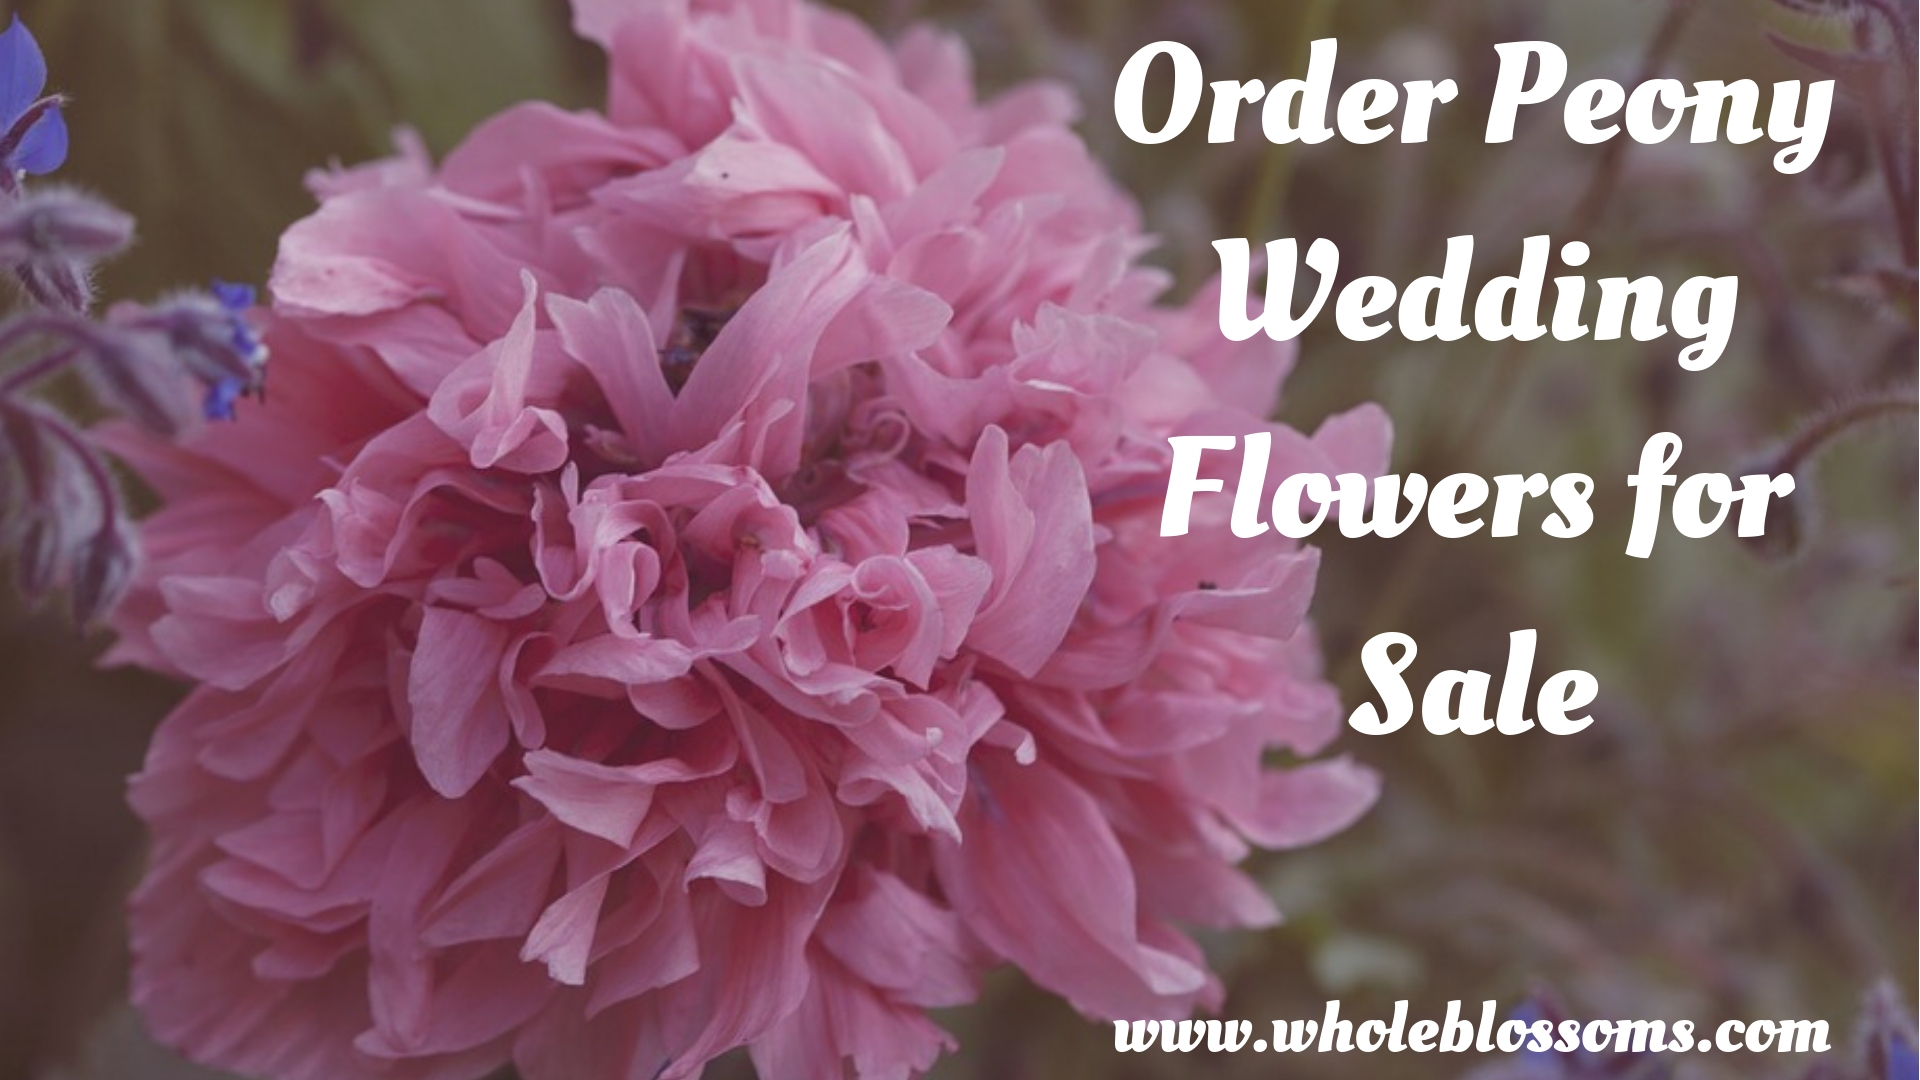 Order Fresh Cut Peonies Online at Wholesale Prices